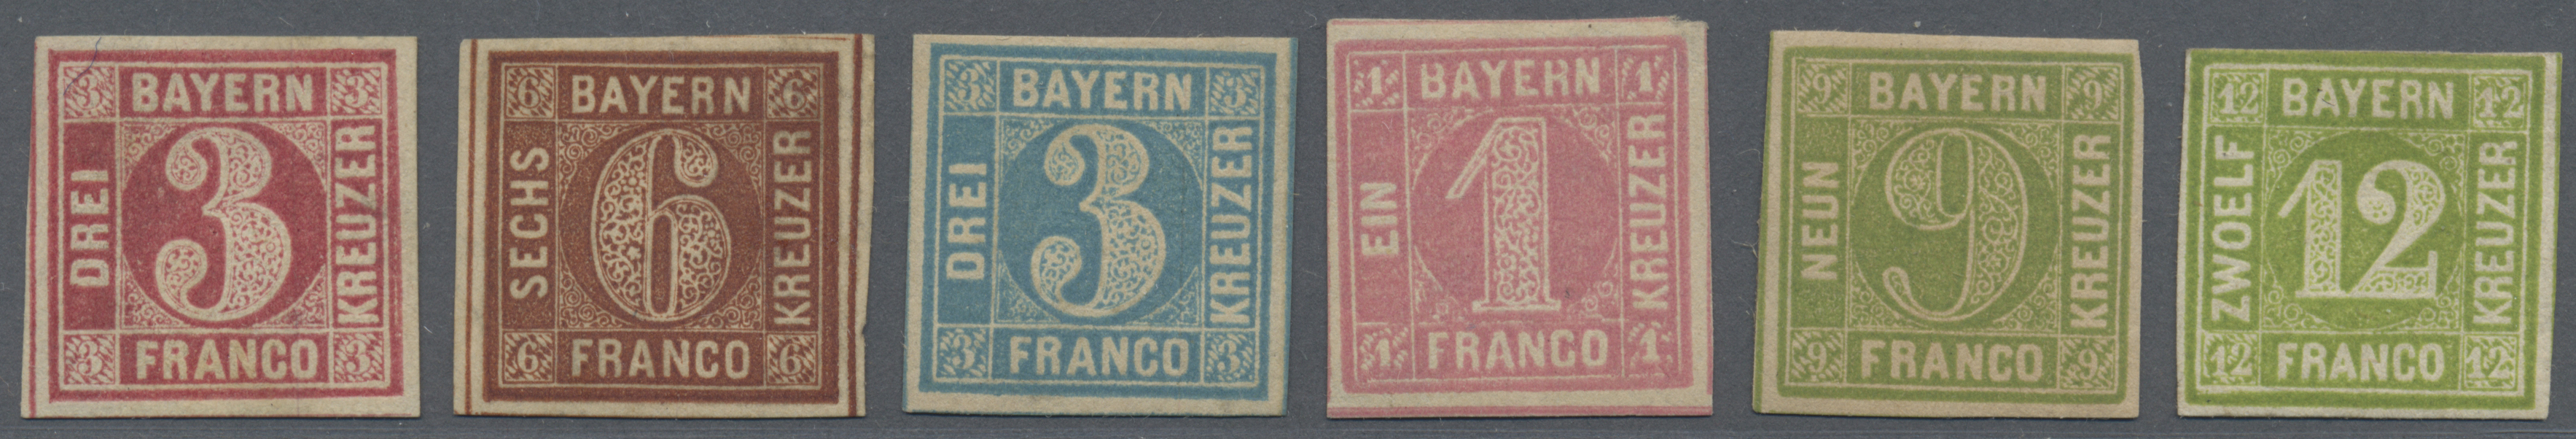 Lot 17065 - Bayern - Marken und Briefe  -  Auktionshaus Christoph Gärtner GmbH & Co. KG Auction #40 Germany, Picture Post Cards, Collections Overseas, Thematics